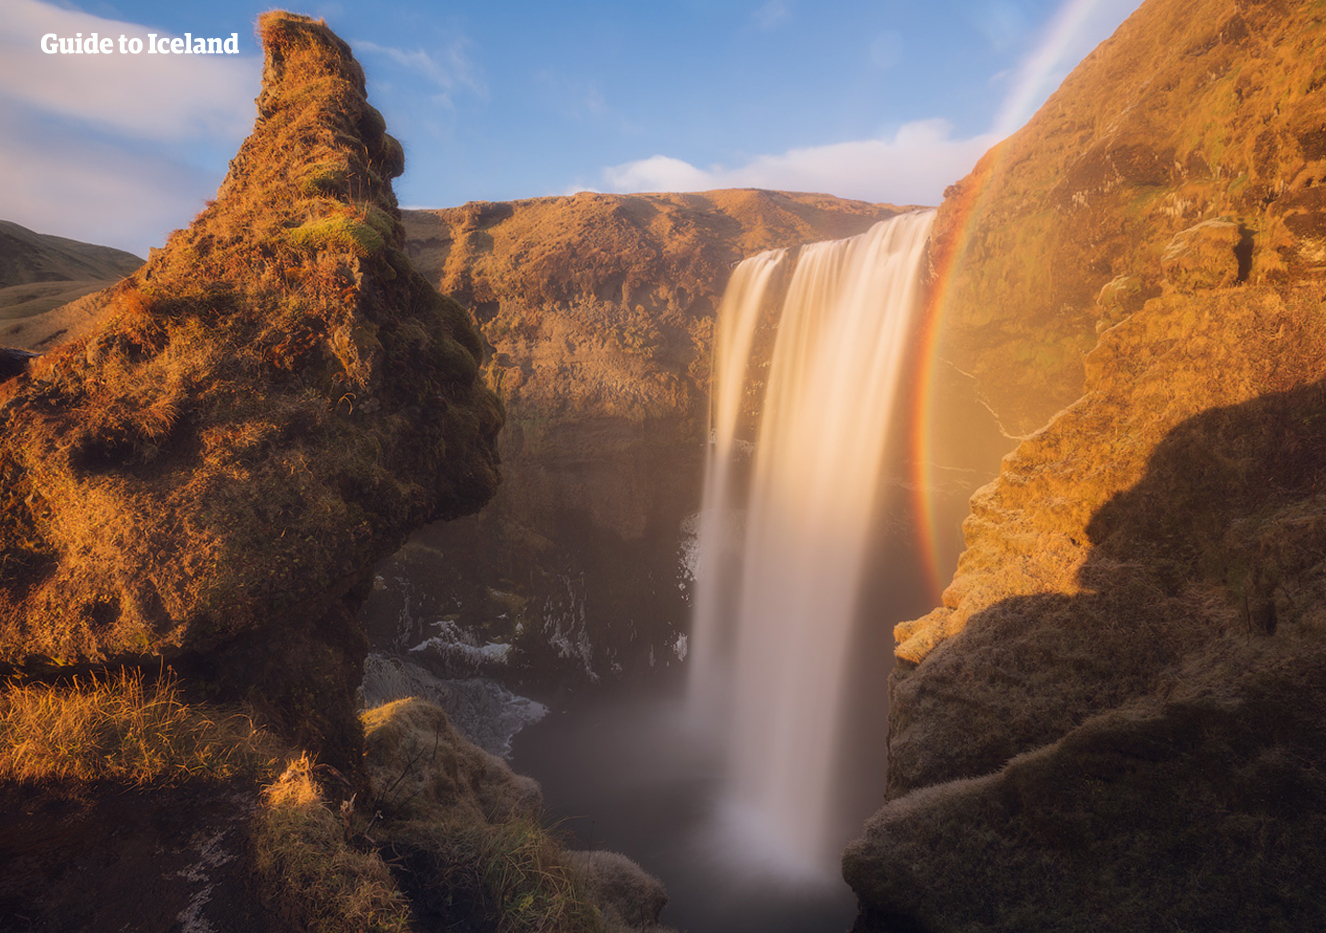 Capture a great photograph of yourself in front of Skógafoss waterfall on the South Coast.